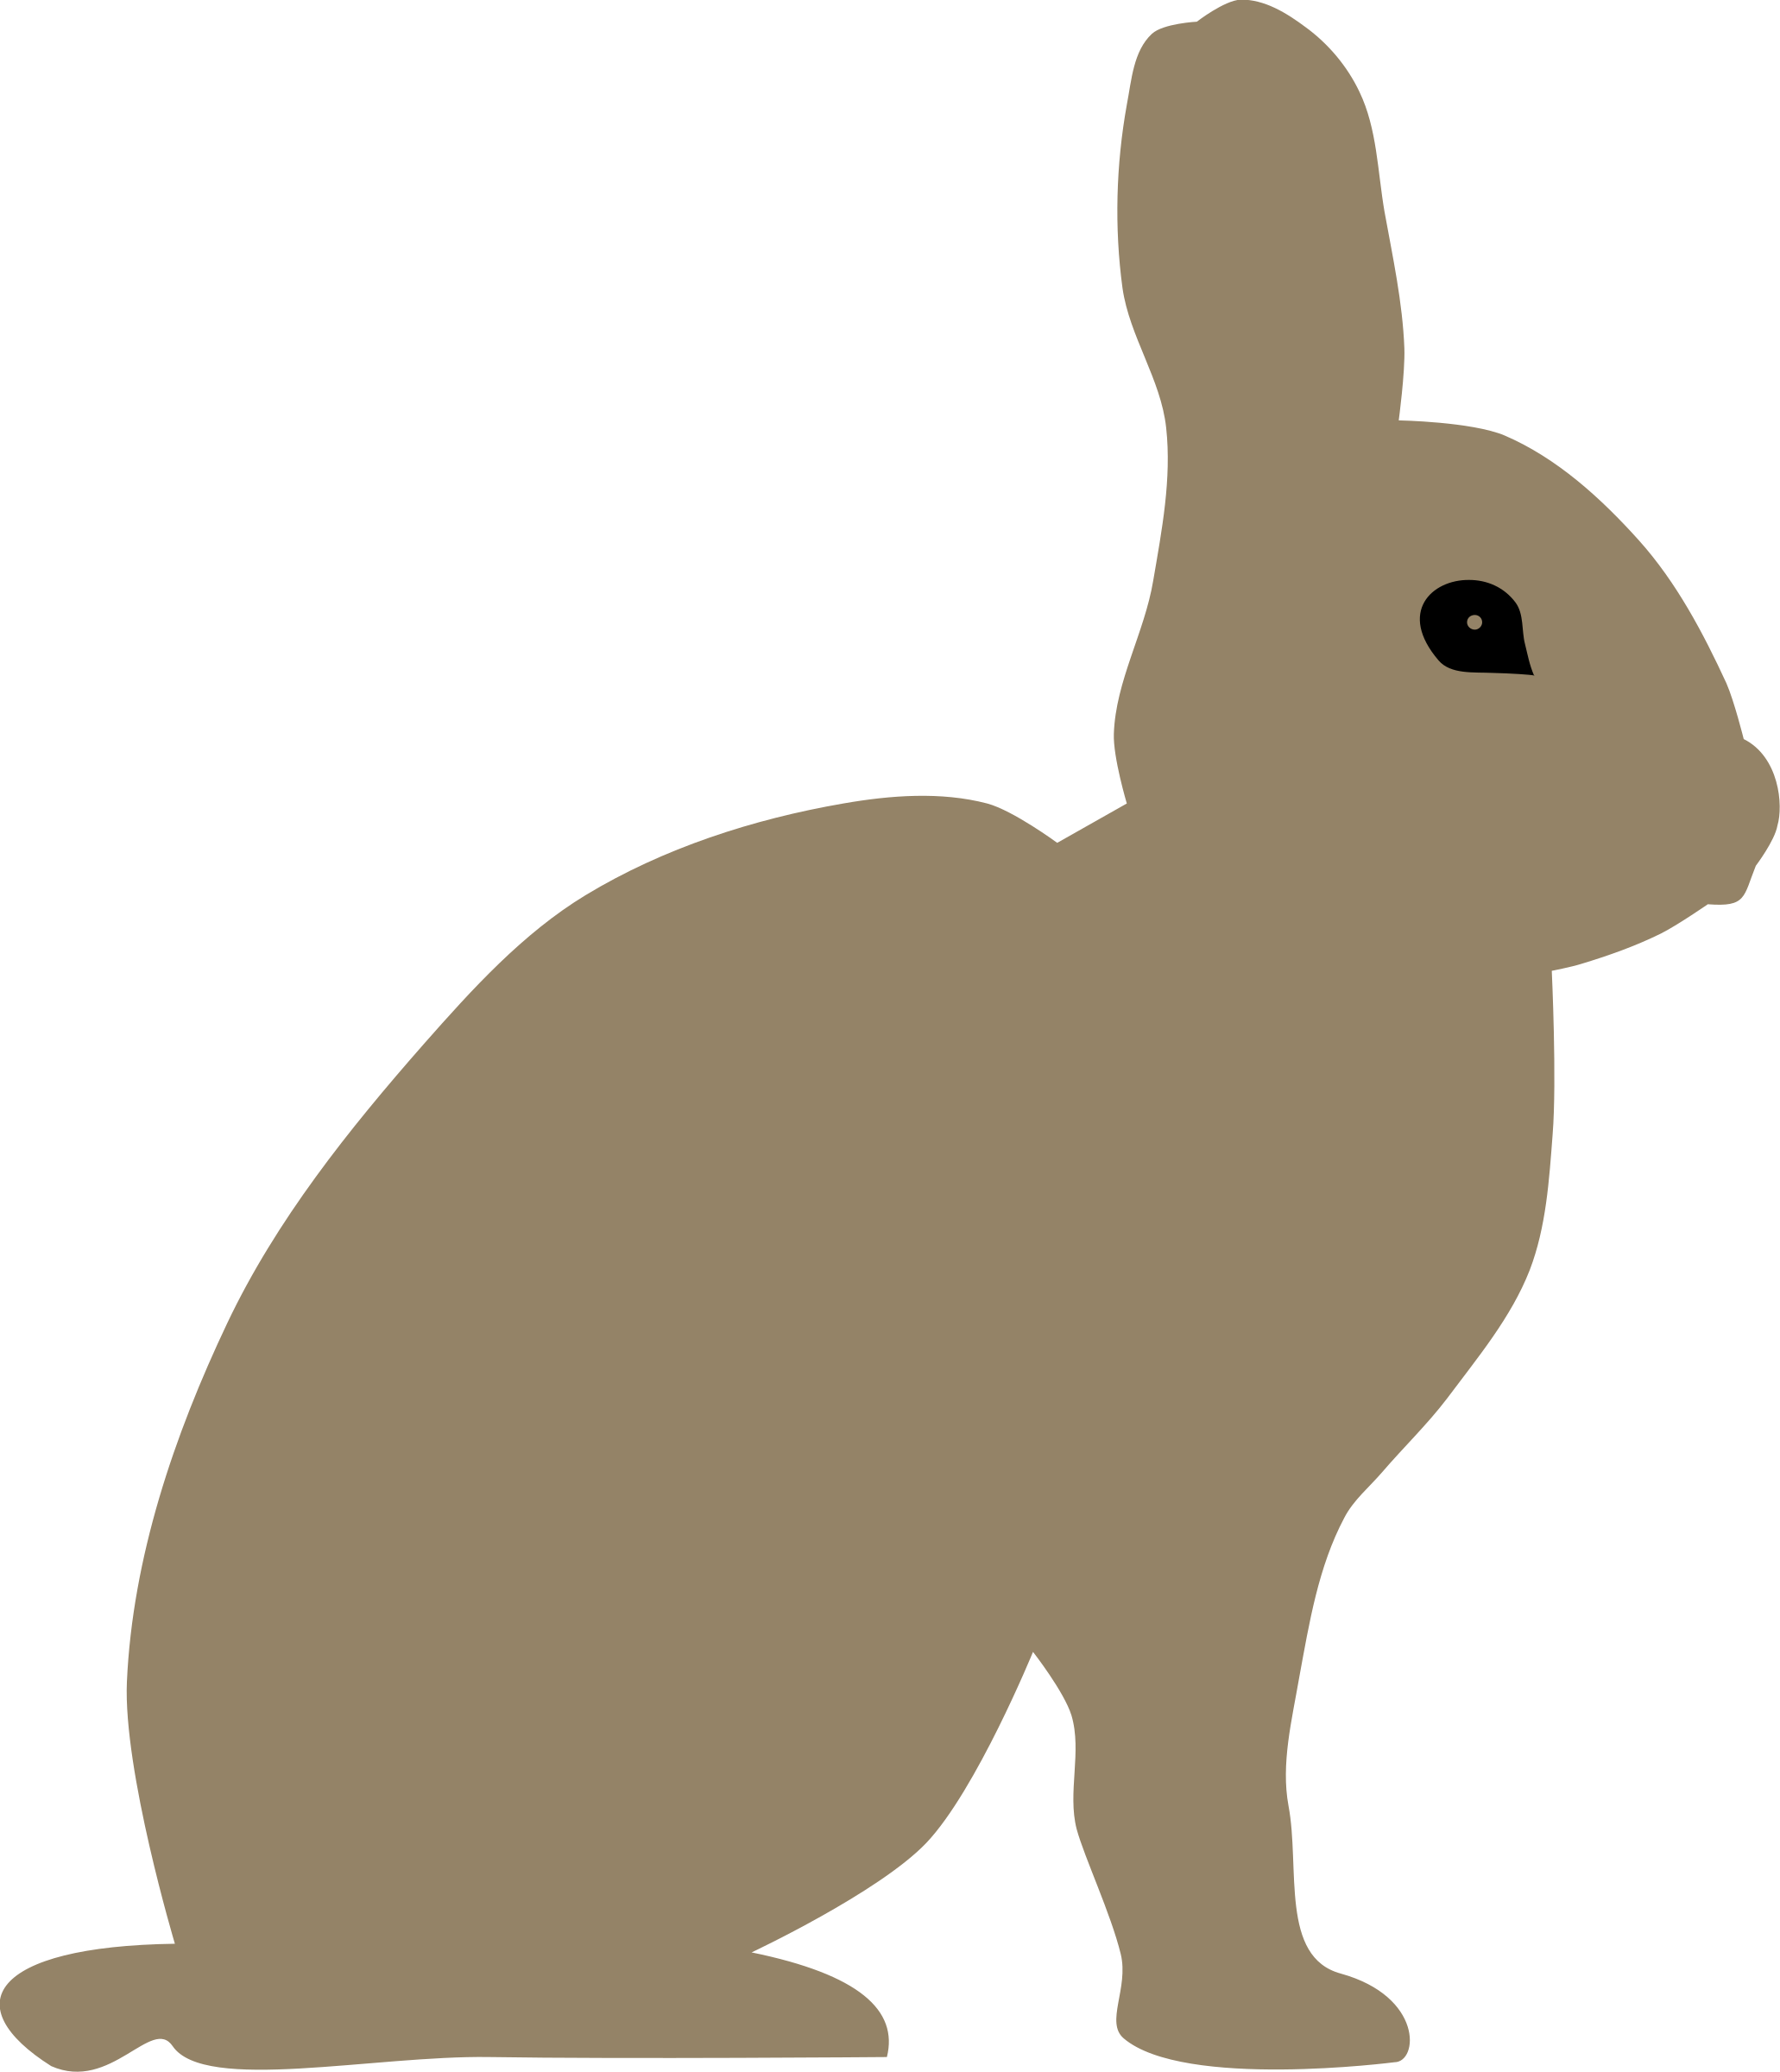 Clipart rabbit arctic hare. By rones big image